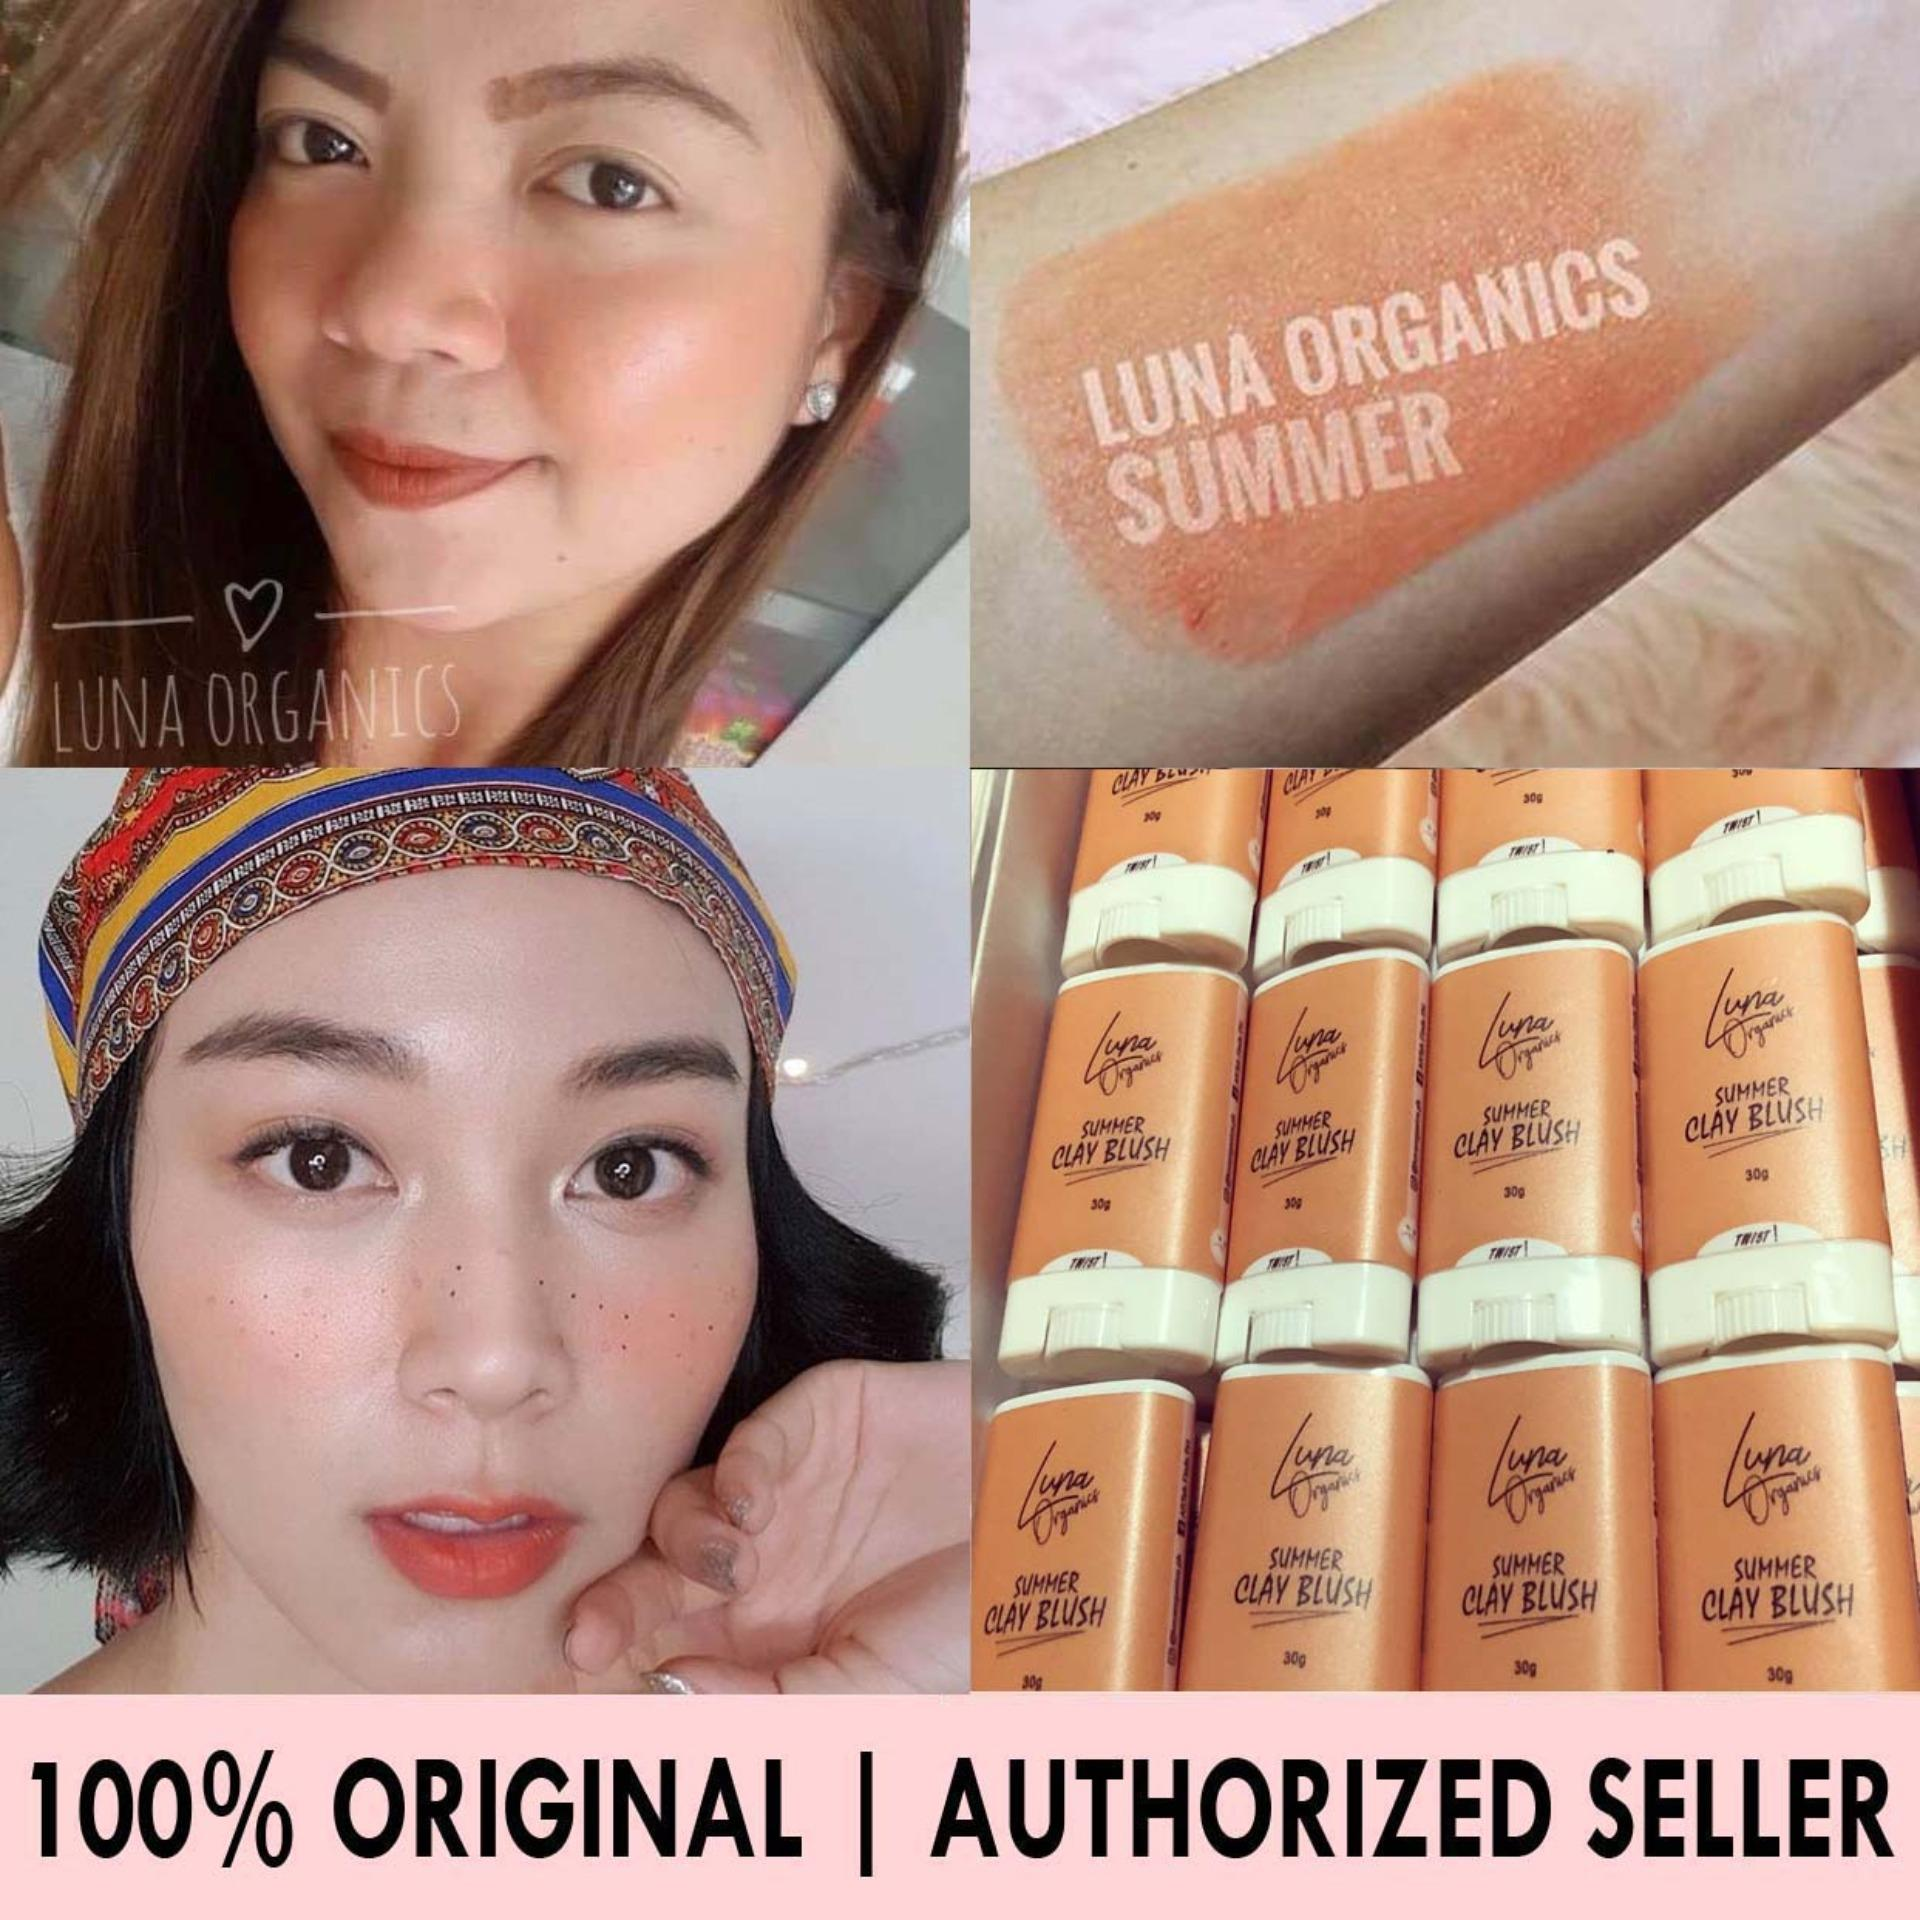 Authentic LUNA ORGANICS SUMMER Clay Blush Shade 100% Original (Exclusive Authorized Product Distributor Taguig Area) FDA Approved Vegan Korean Make Up Dewy Look Highly Pigmented 30grams Philippines